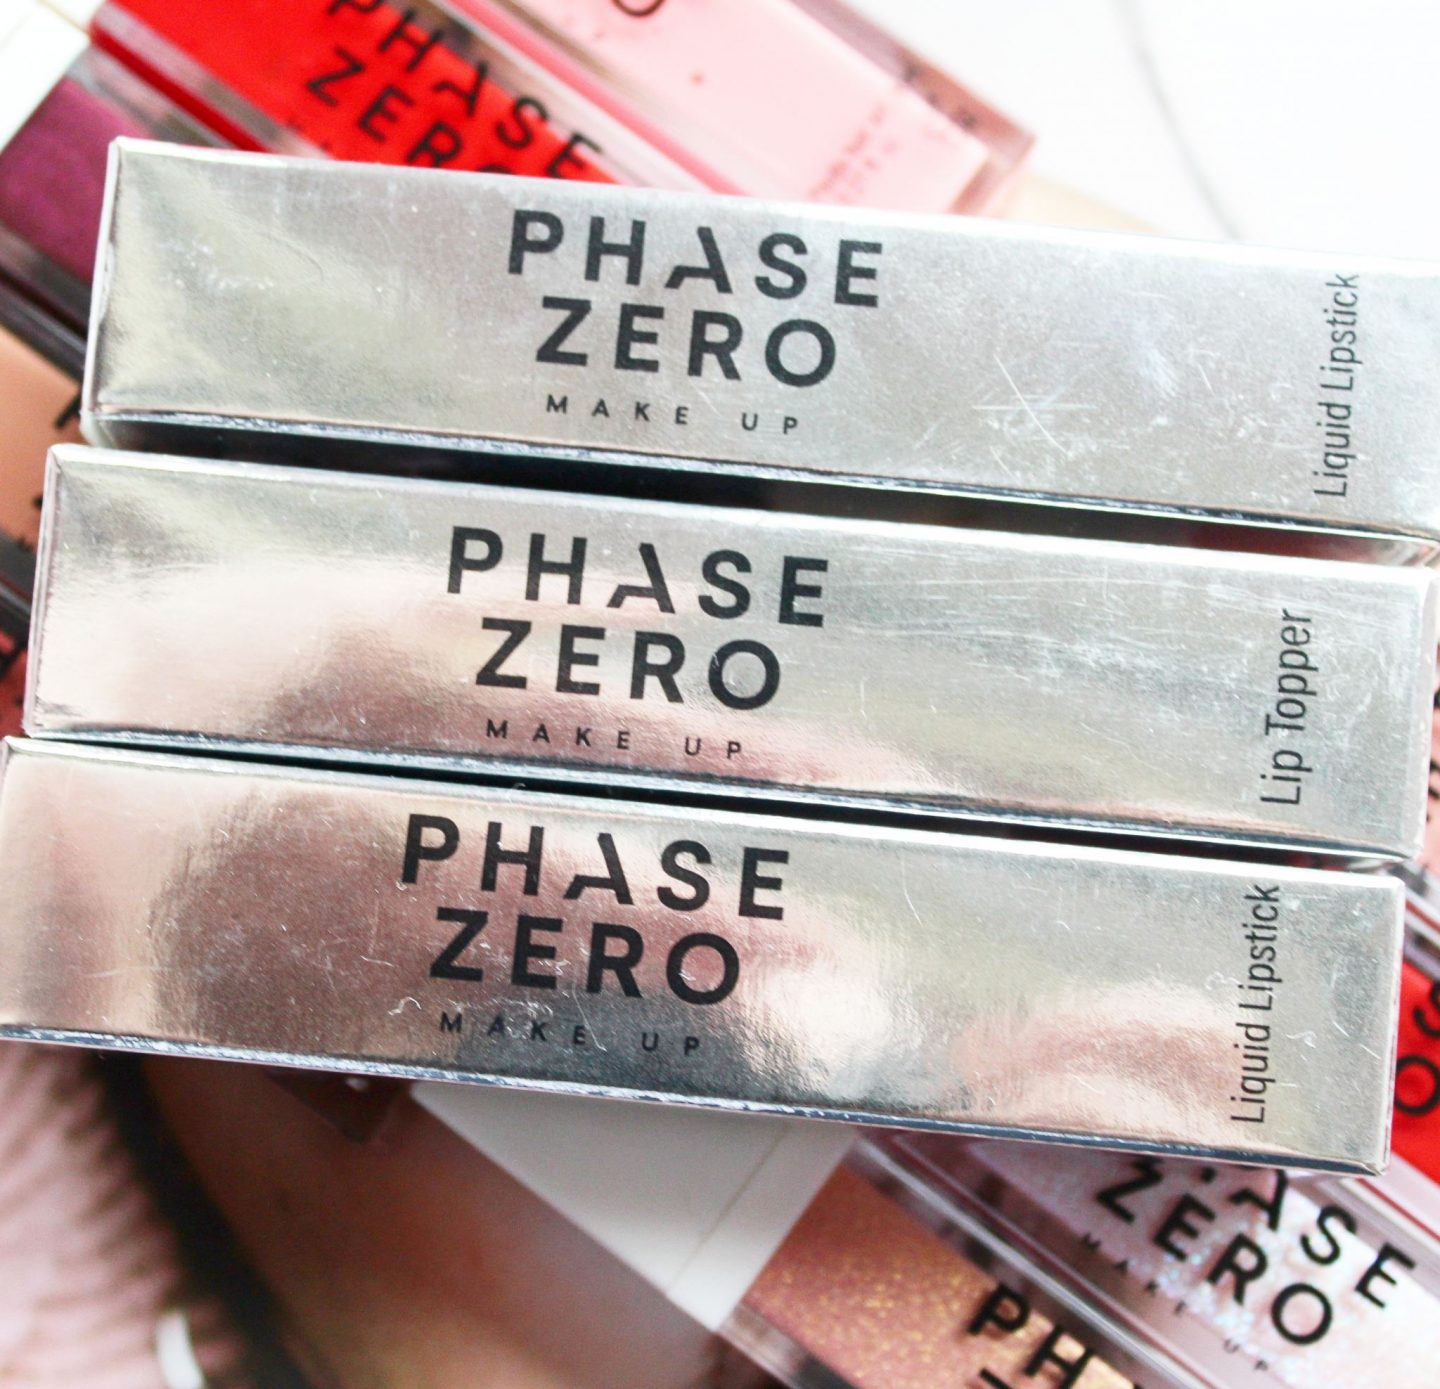 Phase Zero Makeup X Love Me Beauty | The Lipstick Collection